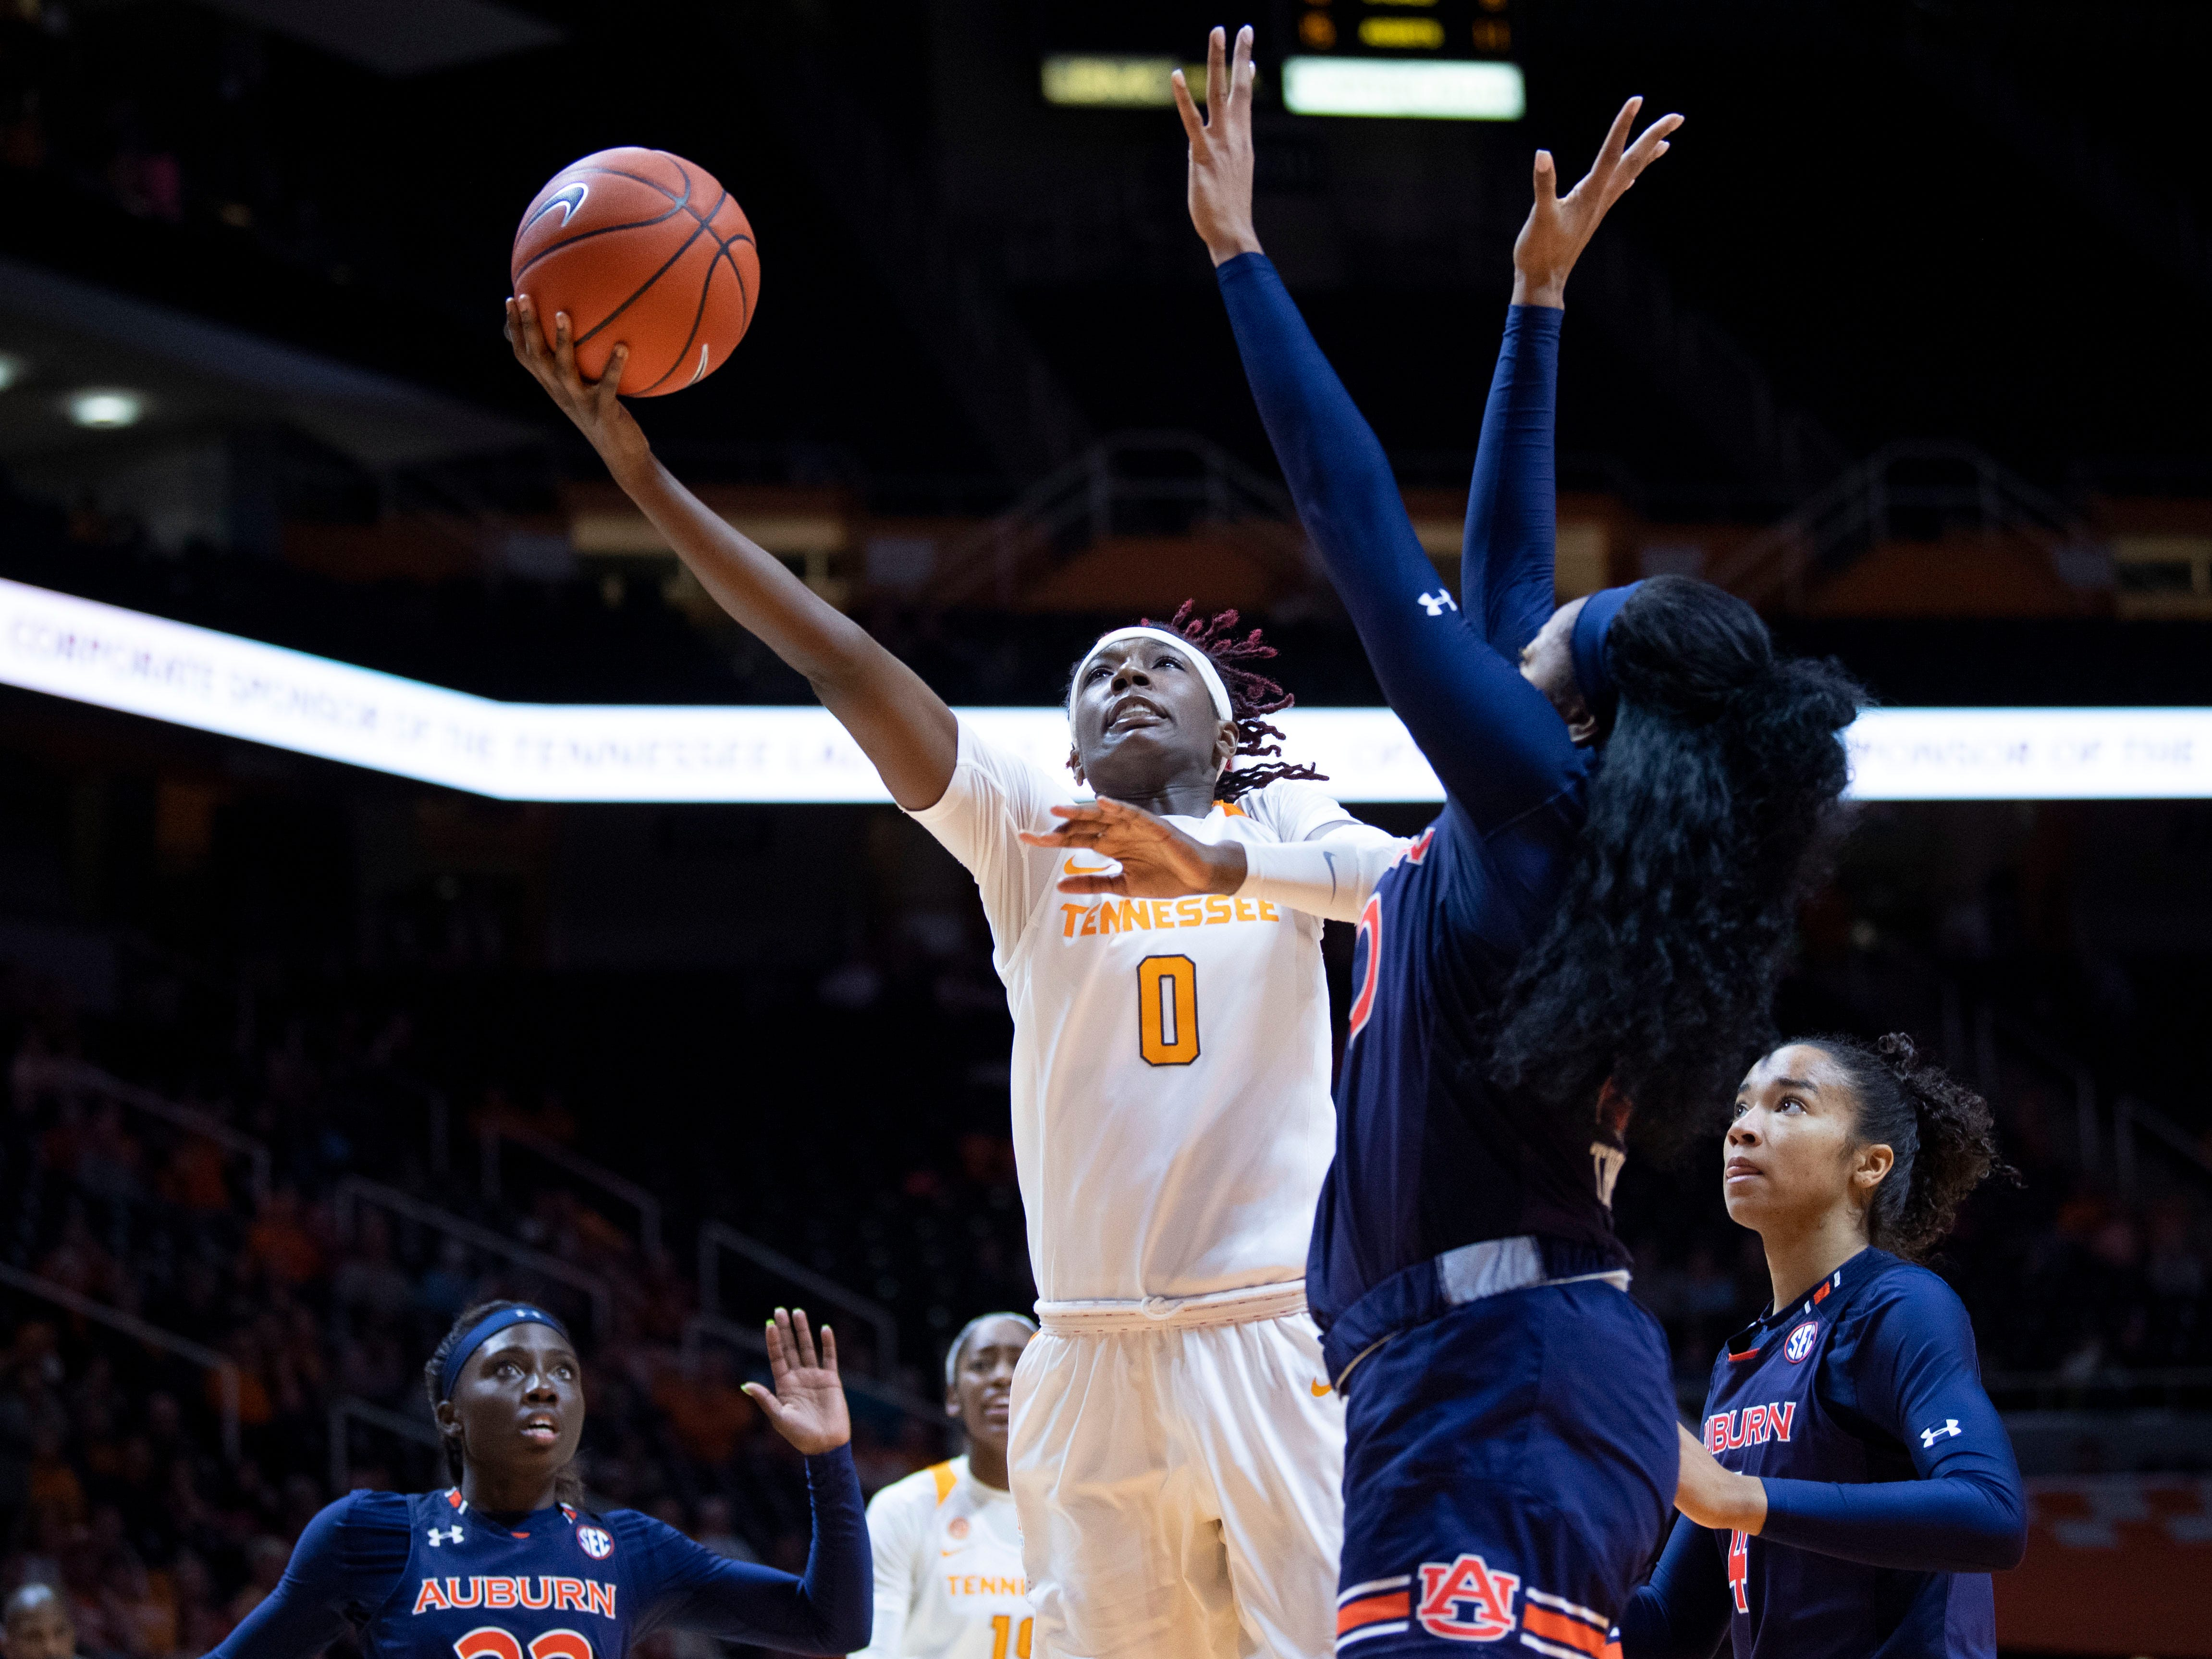 Tennessee's Rennia Davis (0) takes a shot while guaded by Auburn's Unique Thompson (20) on Thursday, February 14, 2019.